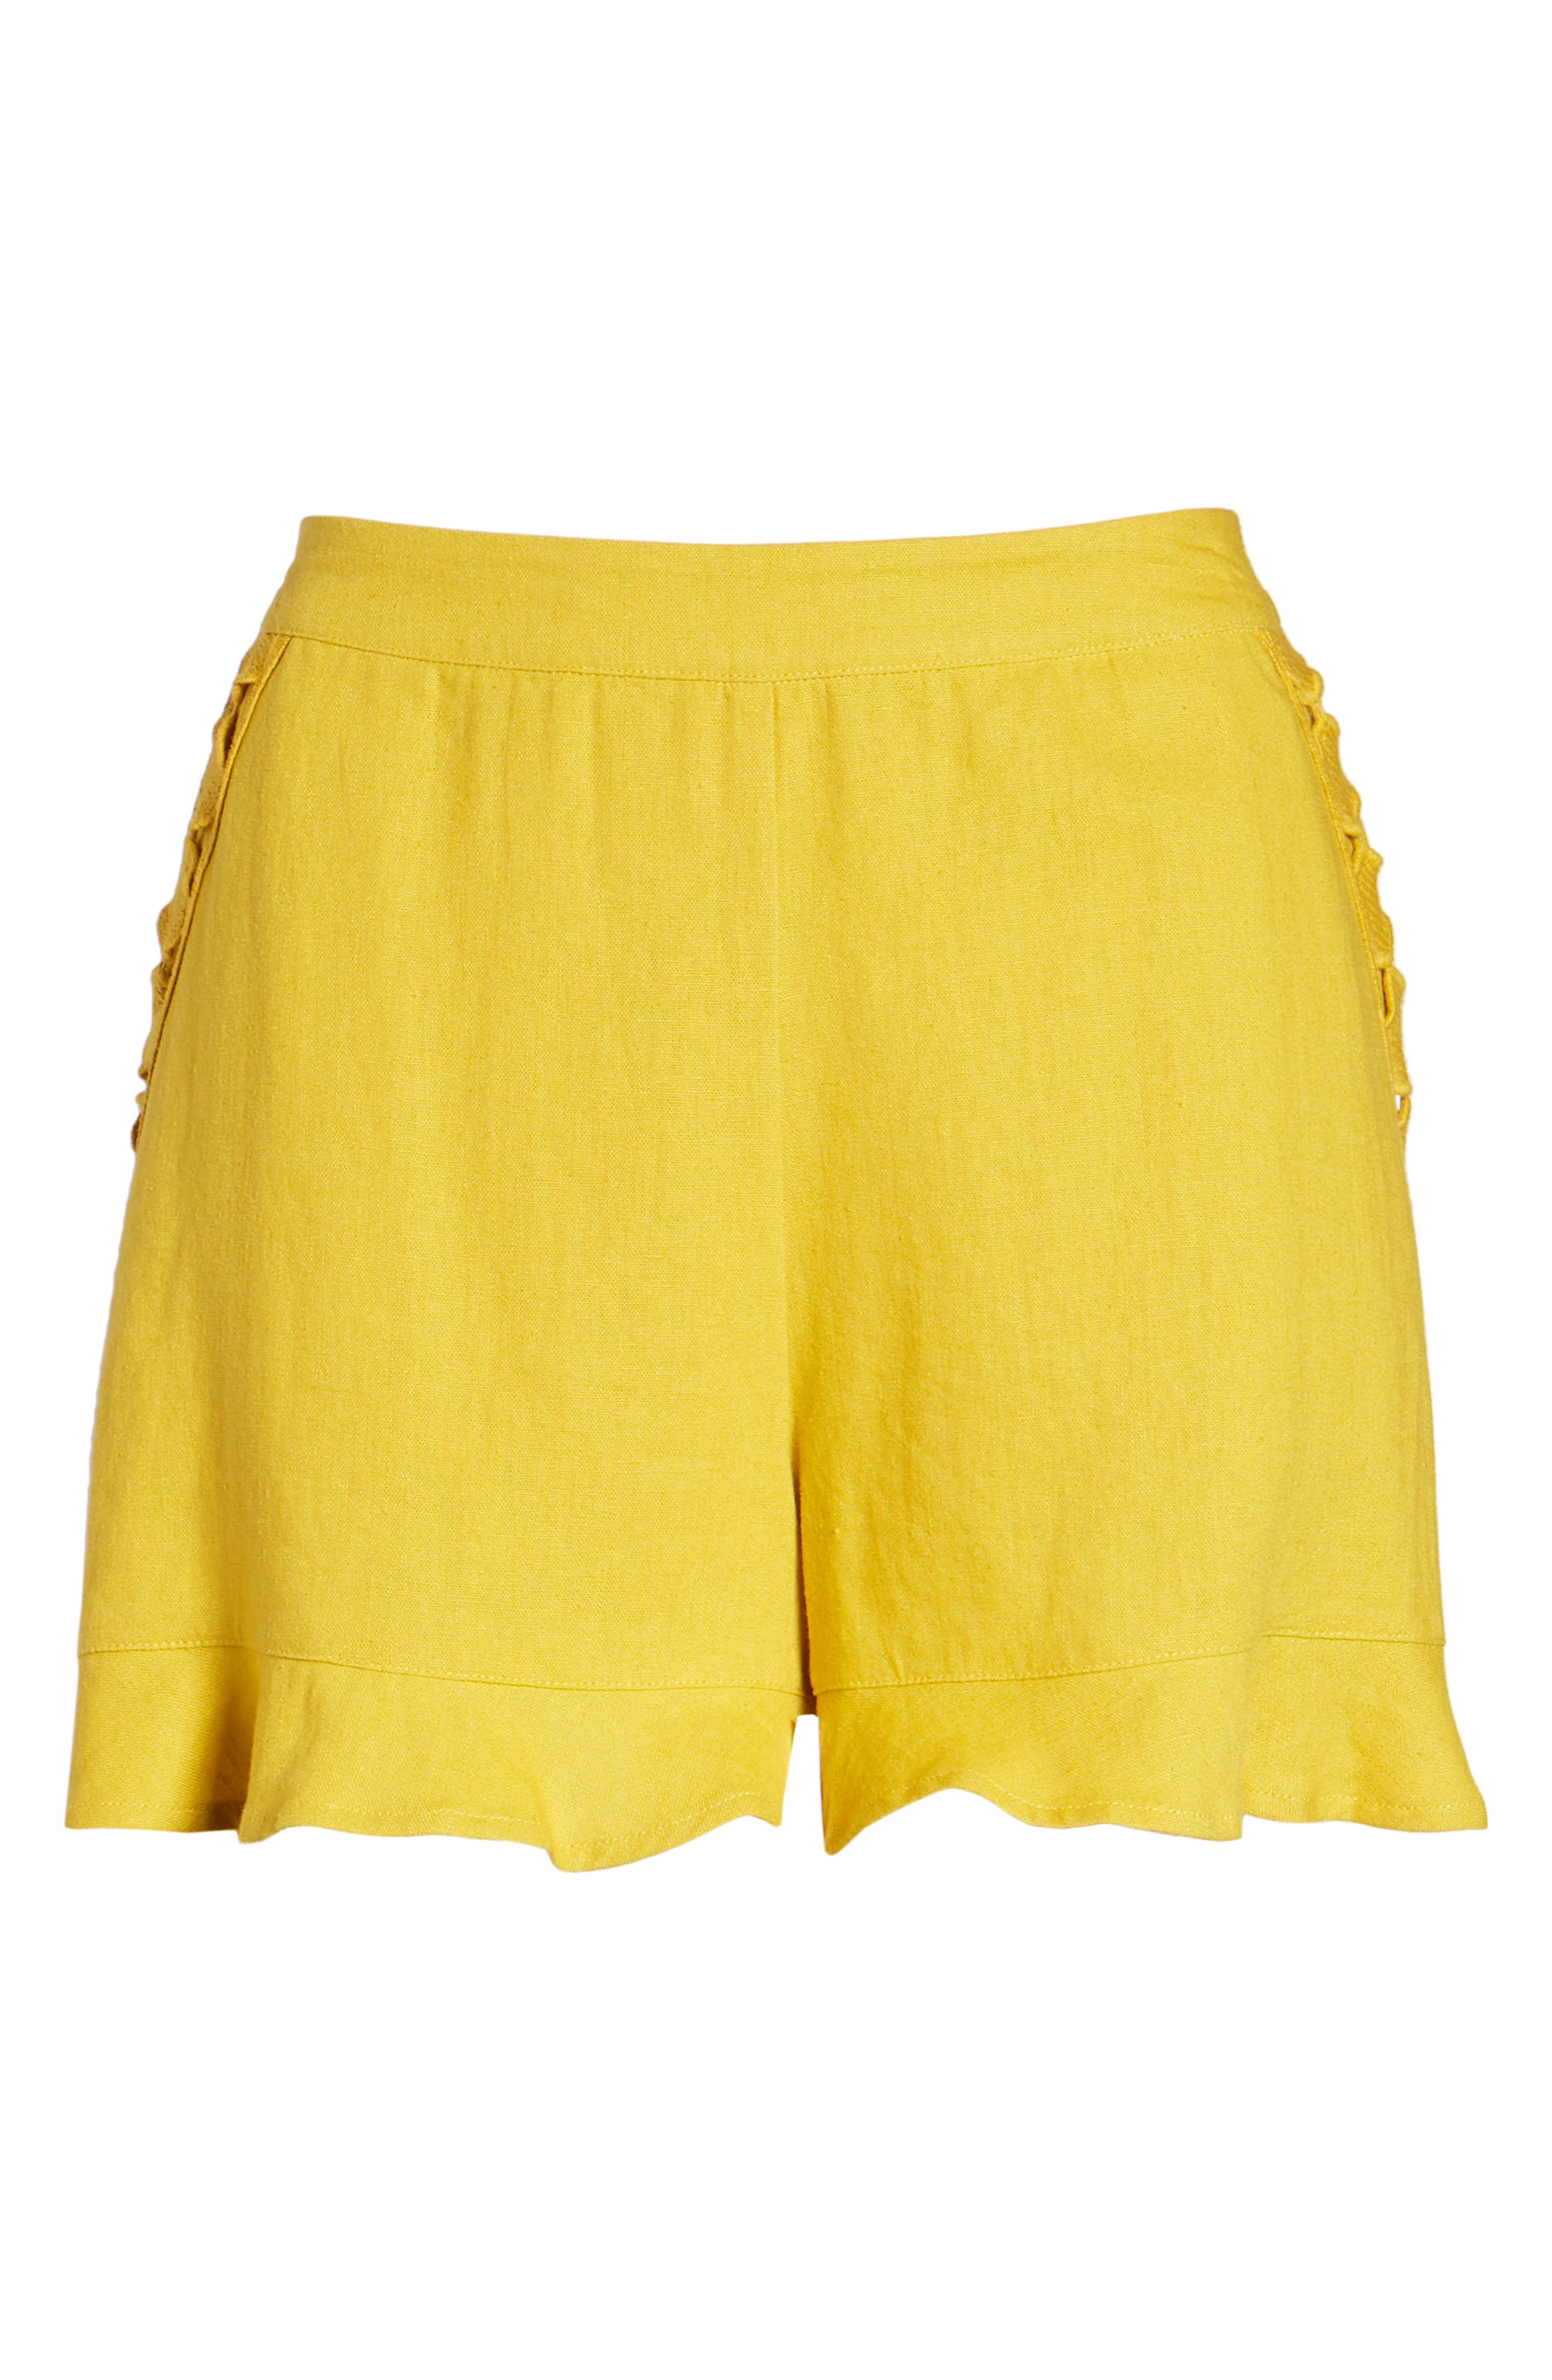 High Rise Ruffle Shorts,                             Alternate thumbnail 6, color,                             Mustard